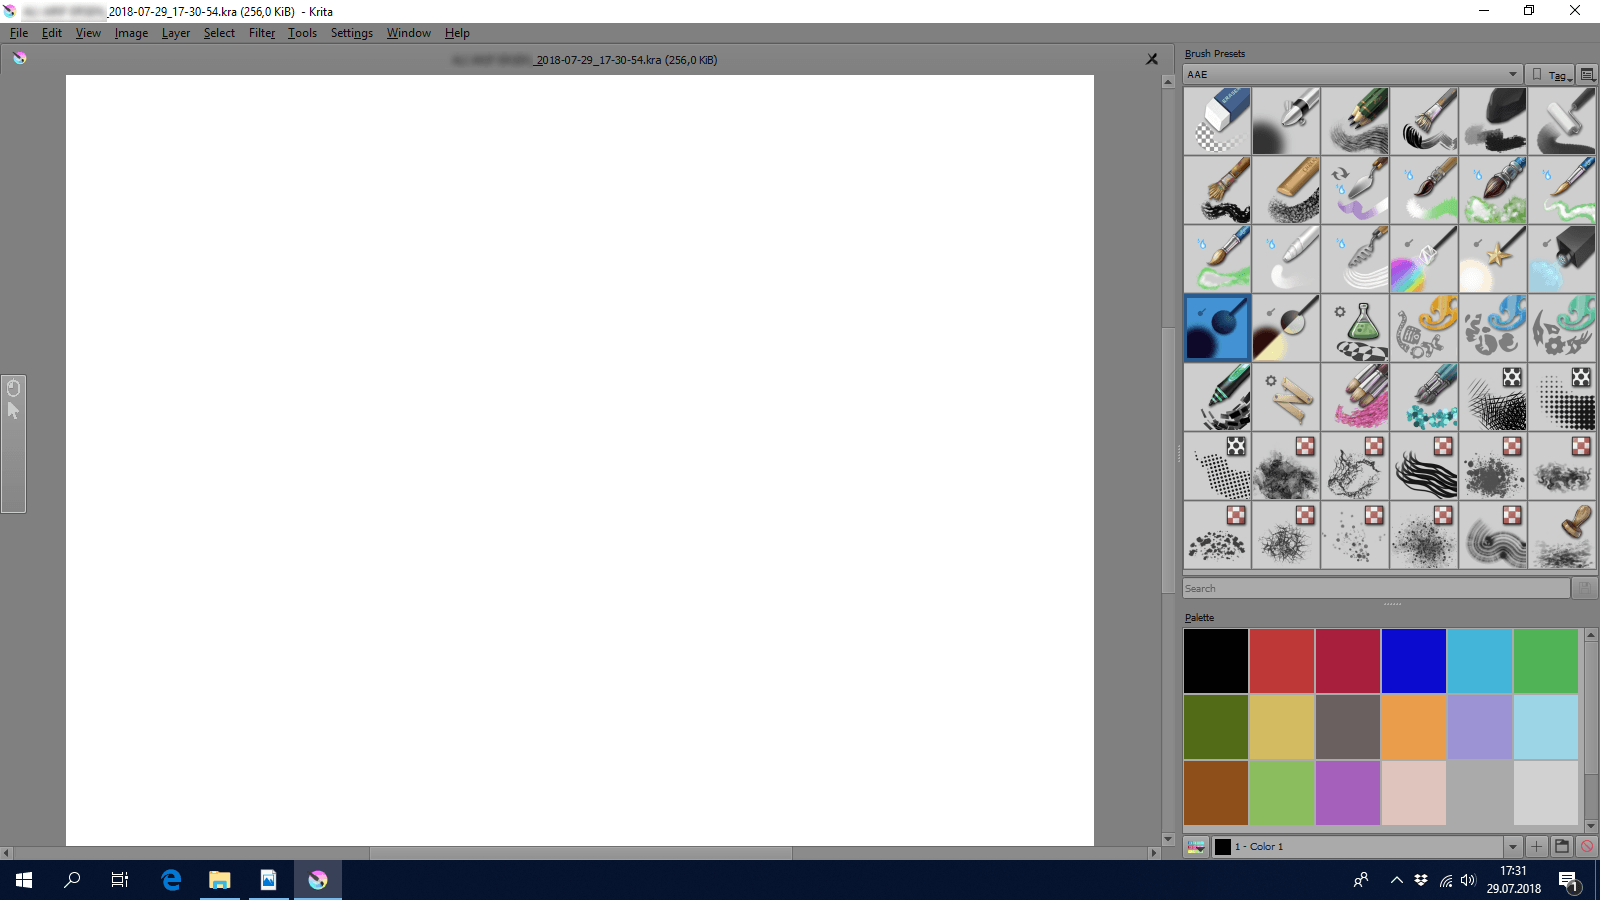 Screenshot of Krita when used with an eye tracker.